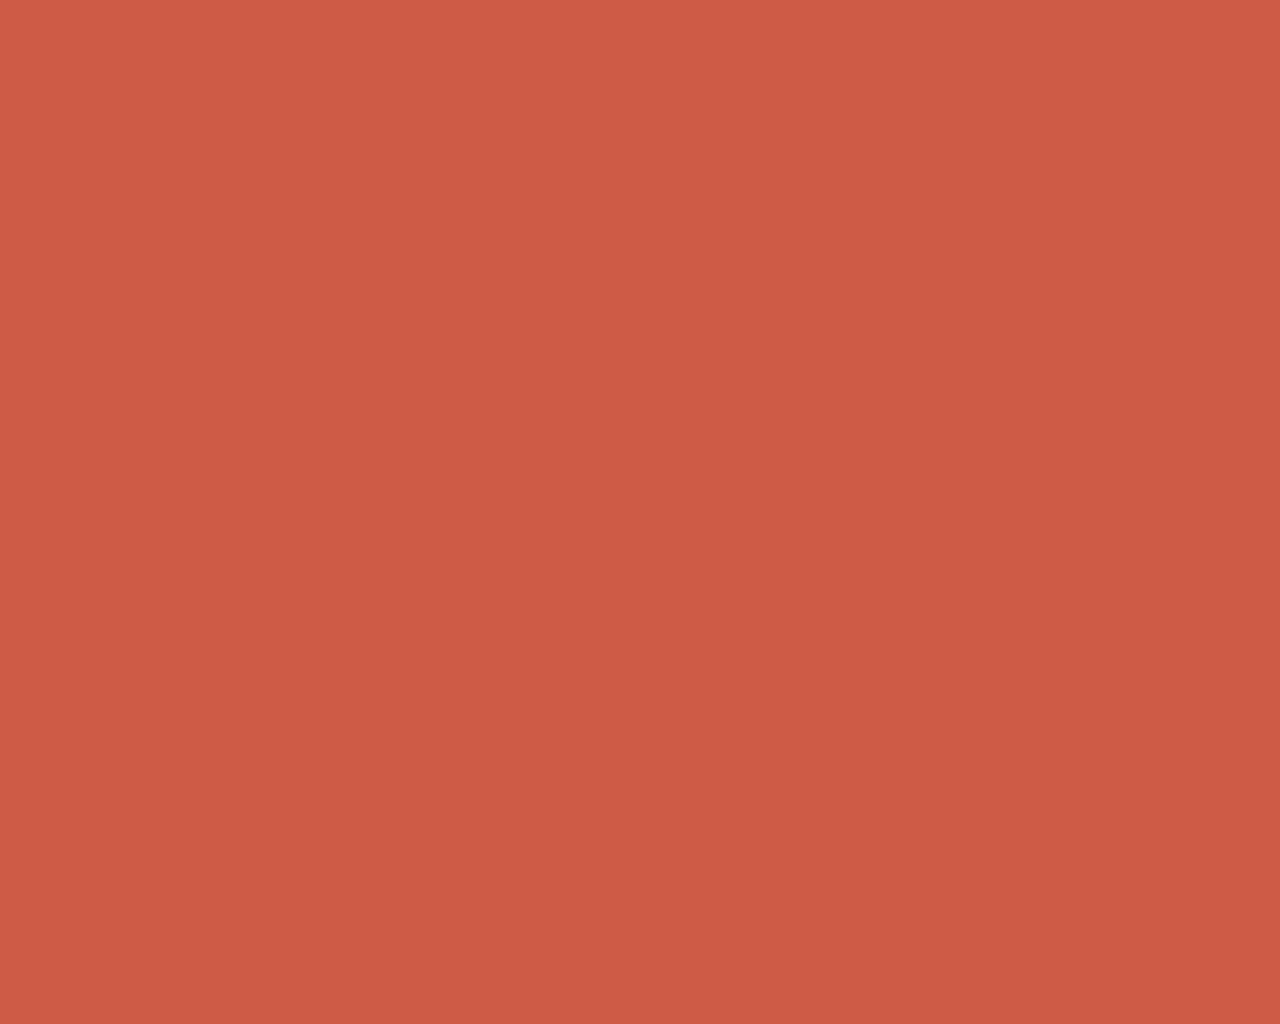 1280x1024 Dark Coral Solid Color Background